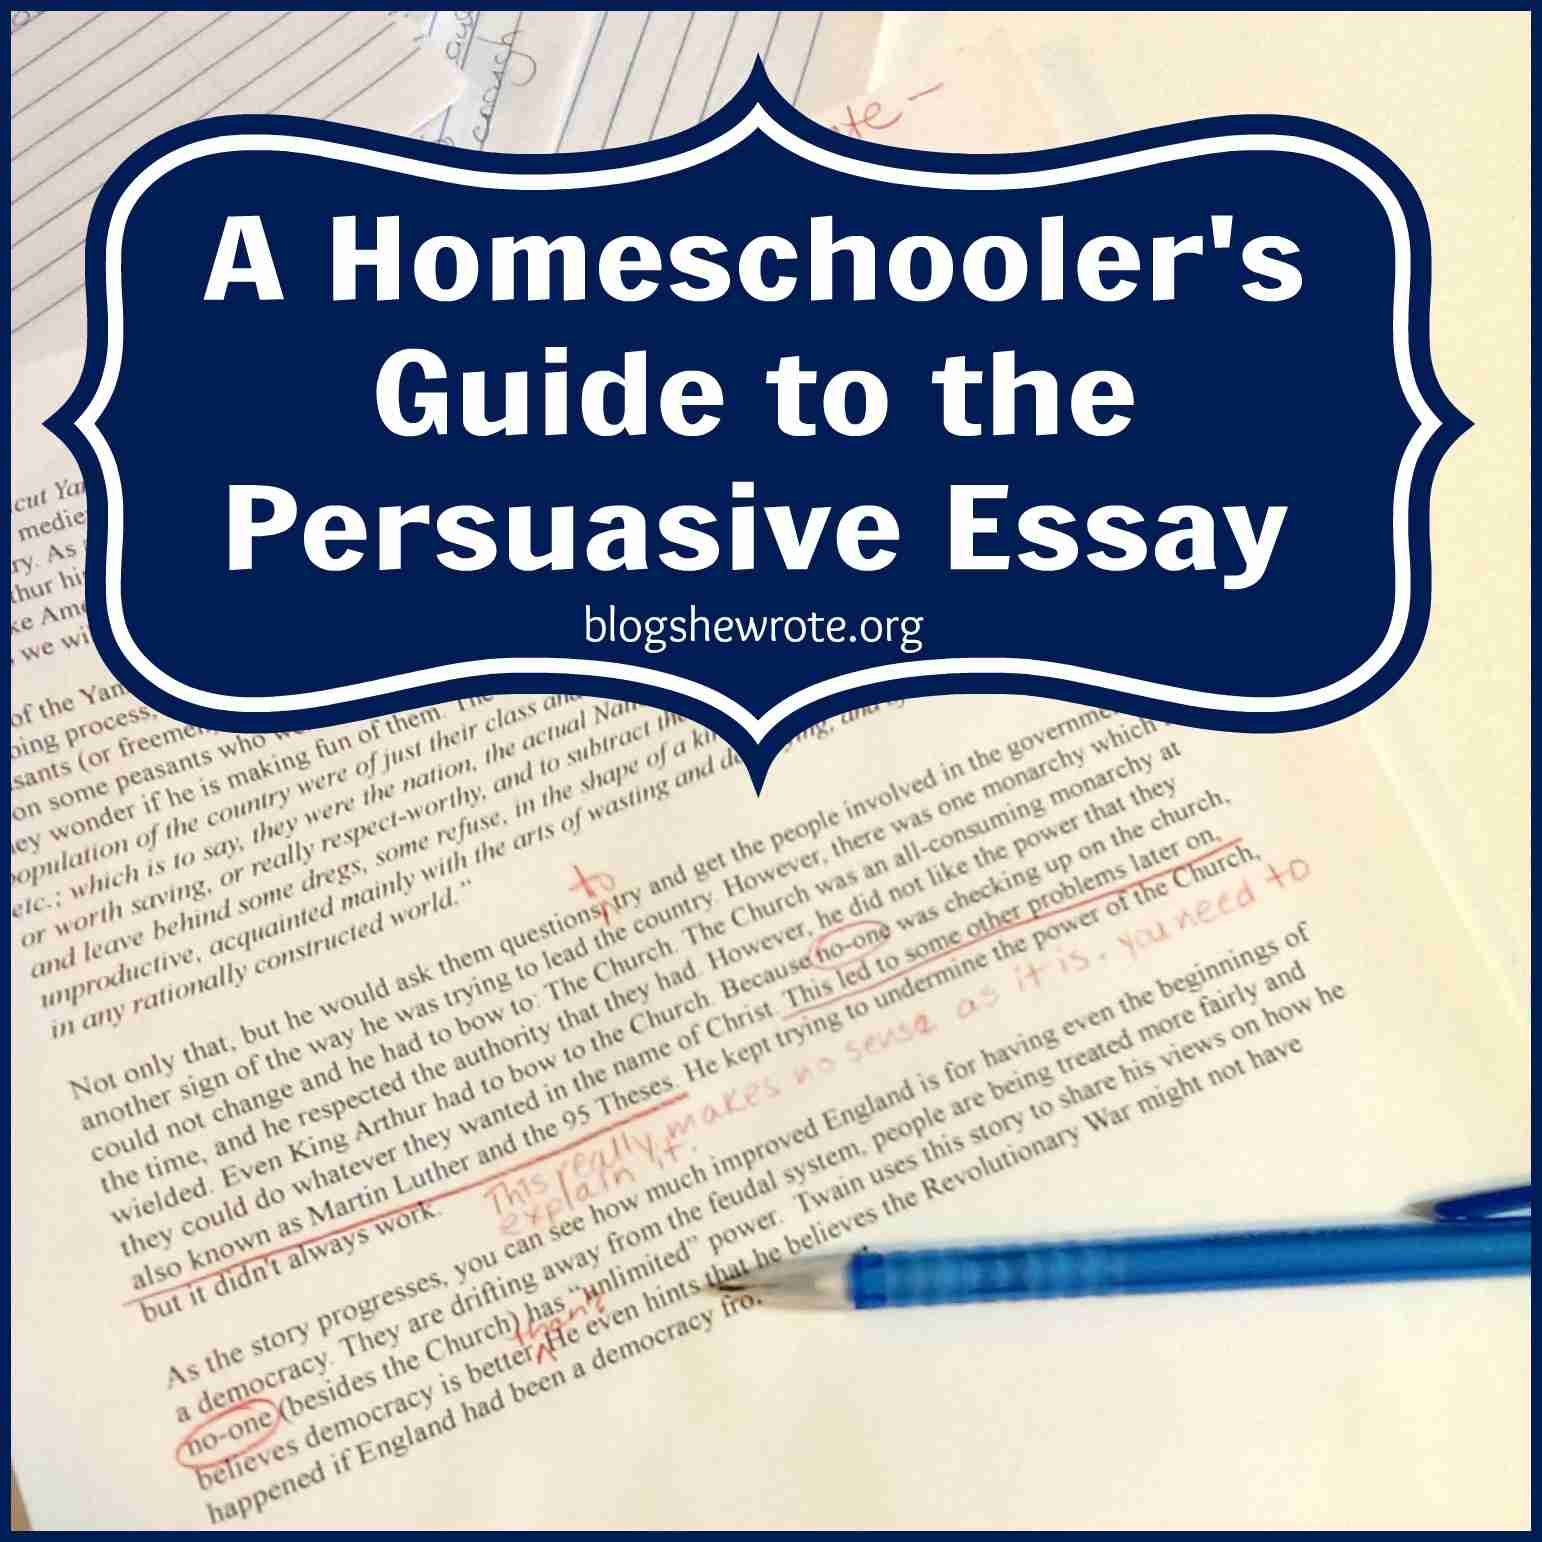 Blog, She Wrote: A Homeschooler's Guide to the Persuasive Essay